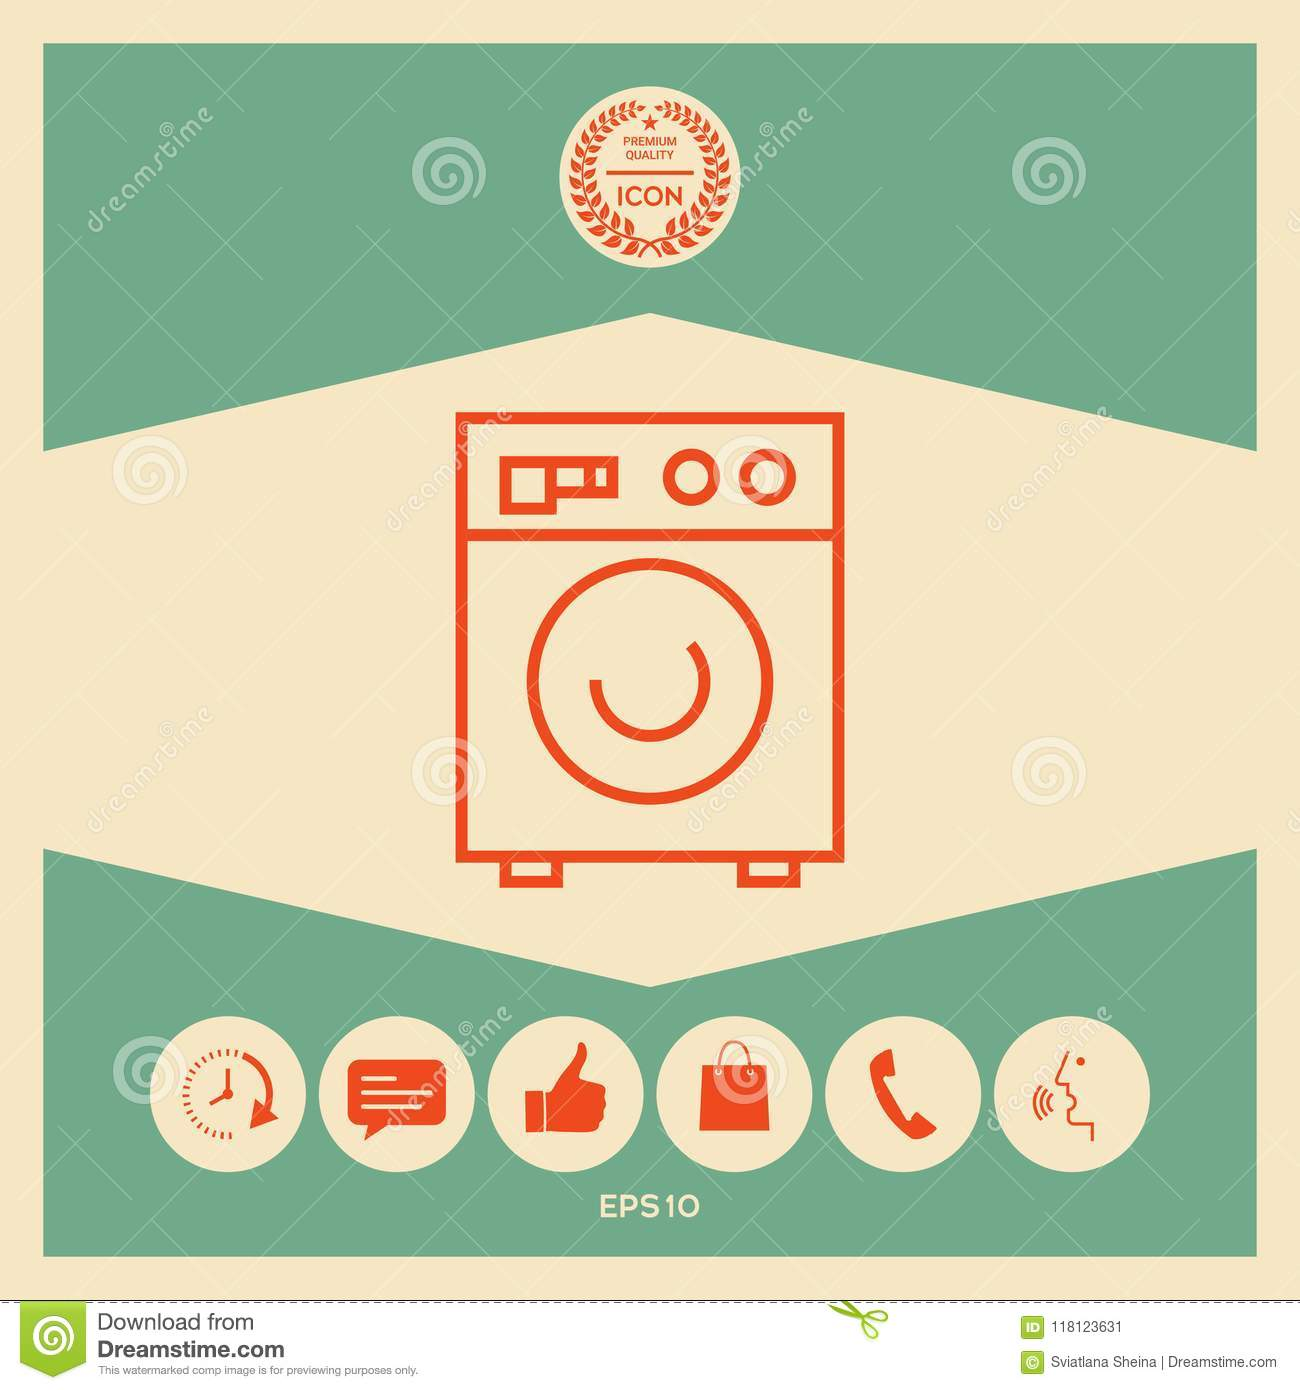 Washing Machine Linear Icon Stock Vector Illustration Of Isolated